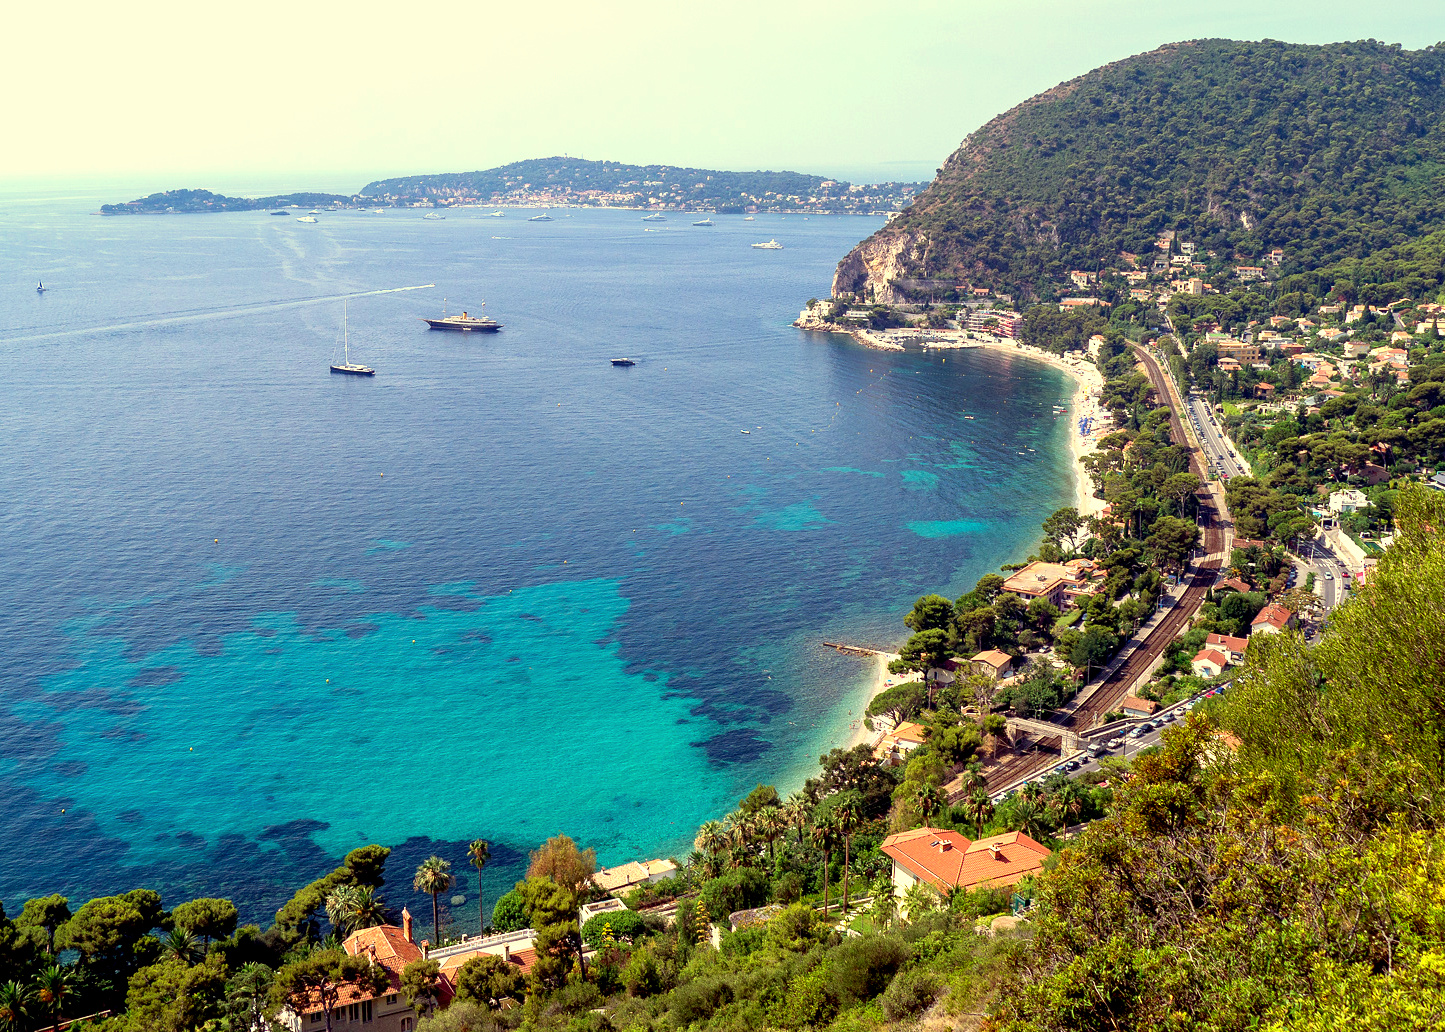 Your friendly, knowledgeable guide on the Riviera